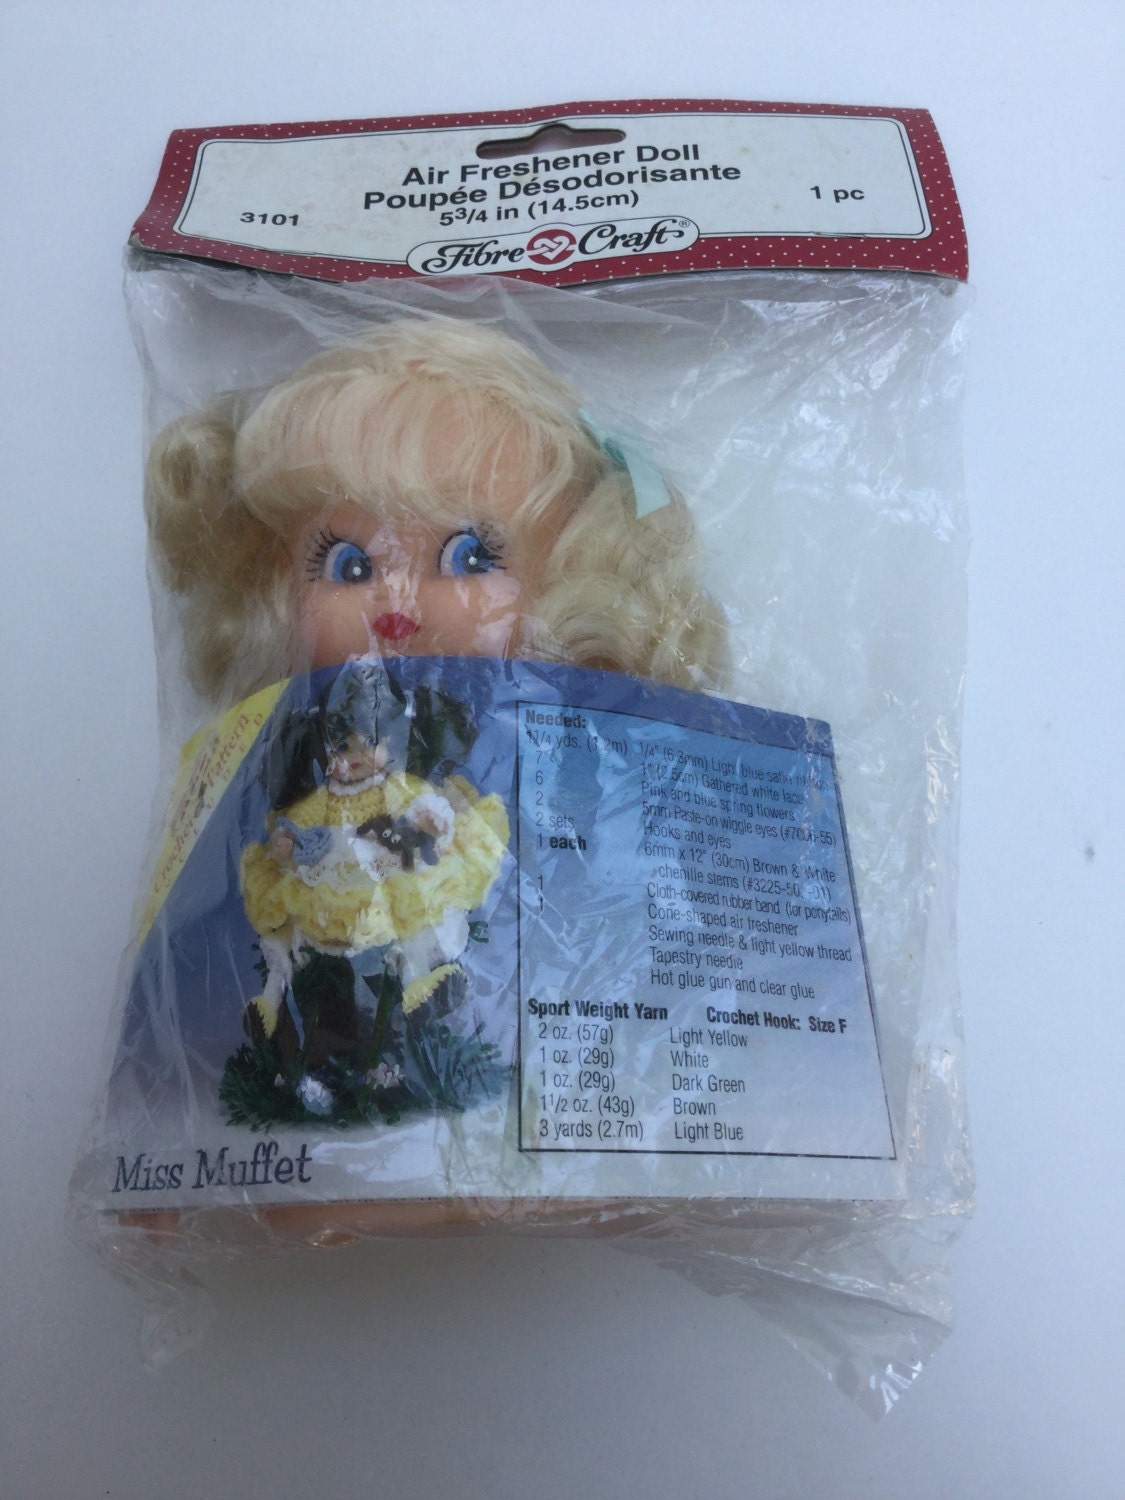 Fibre craft air freshener dolls - O Canada Sale Fibre Craft Air Freshener Doll